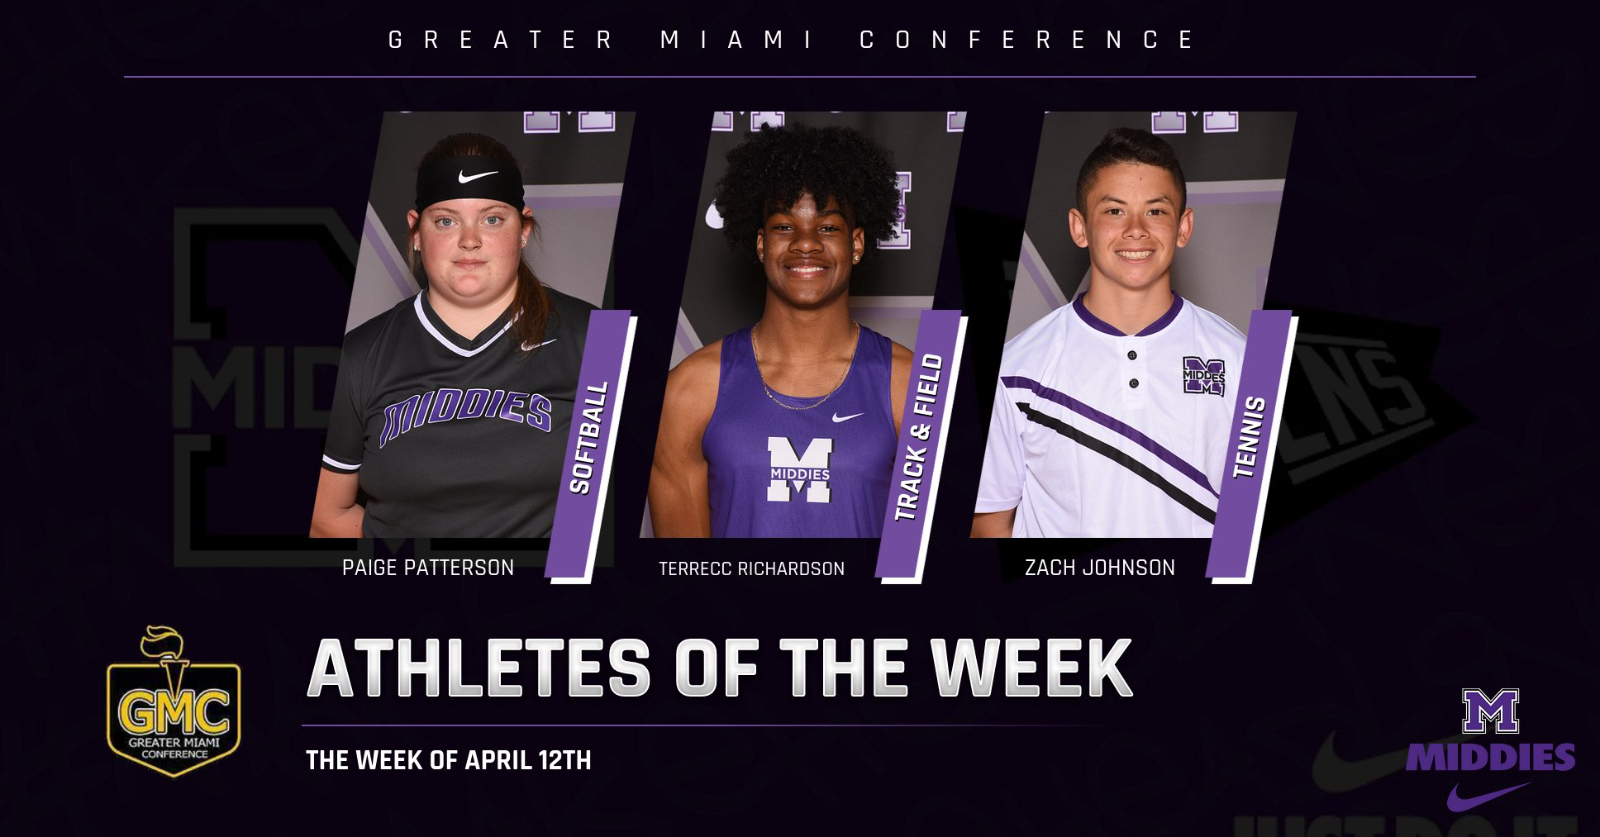 GMC ATHLETES OF THE WEEK